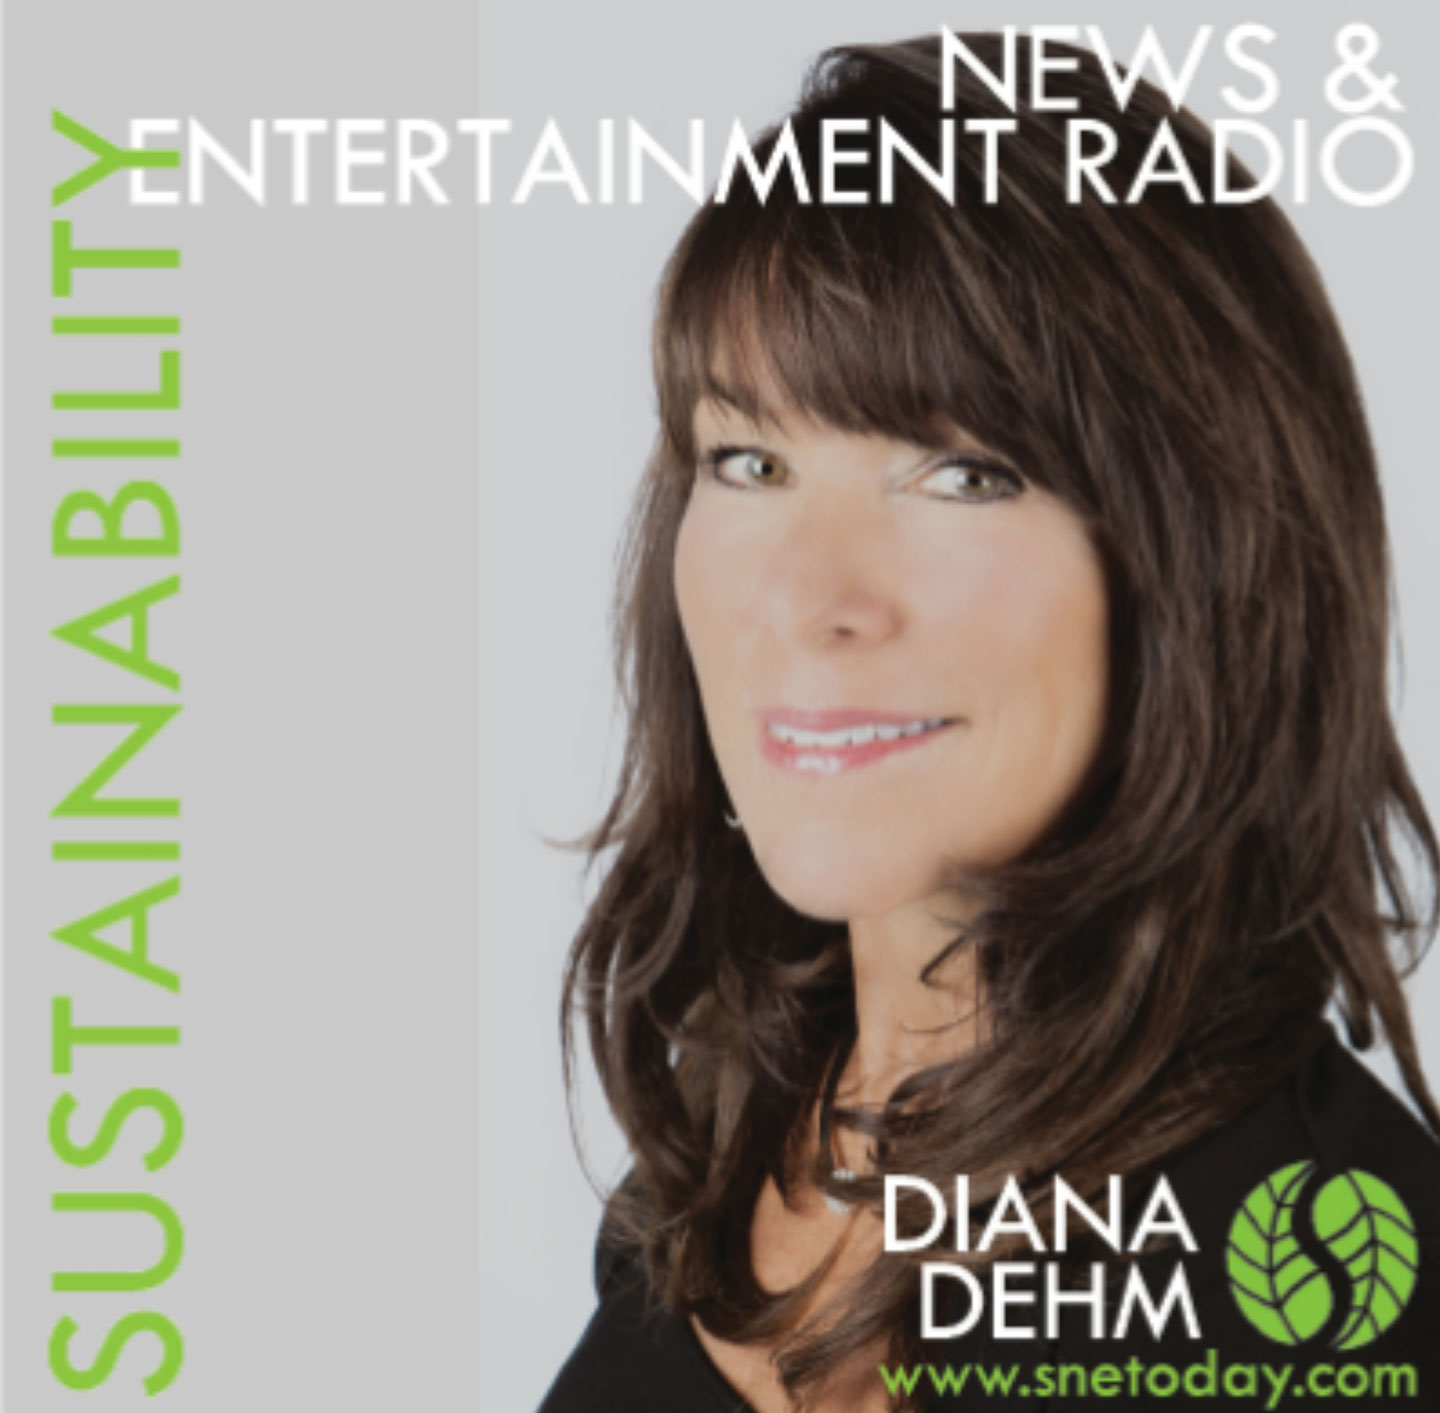 Sustainability News & Entertainment with Diana Dehm